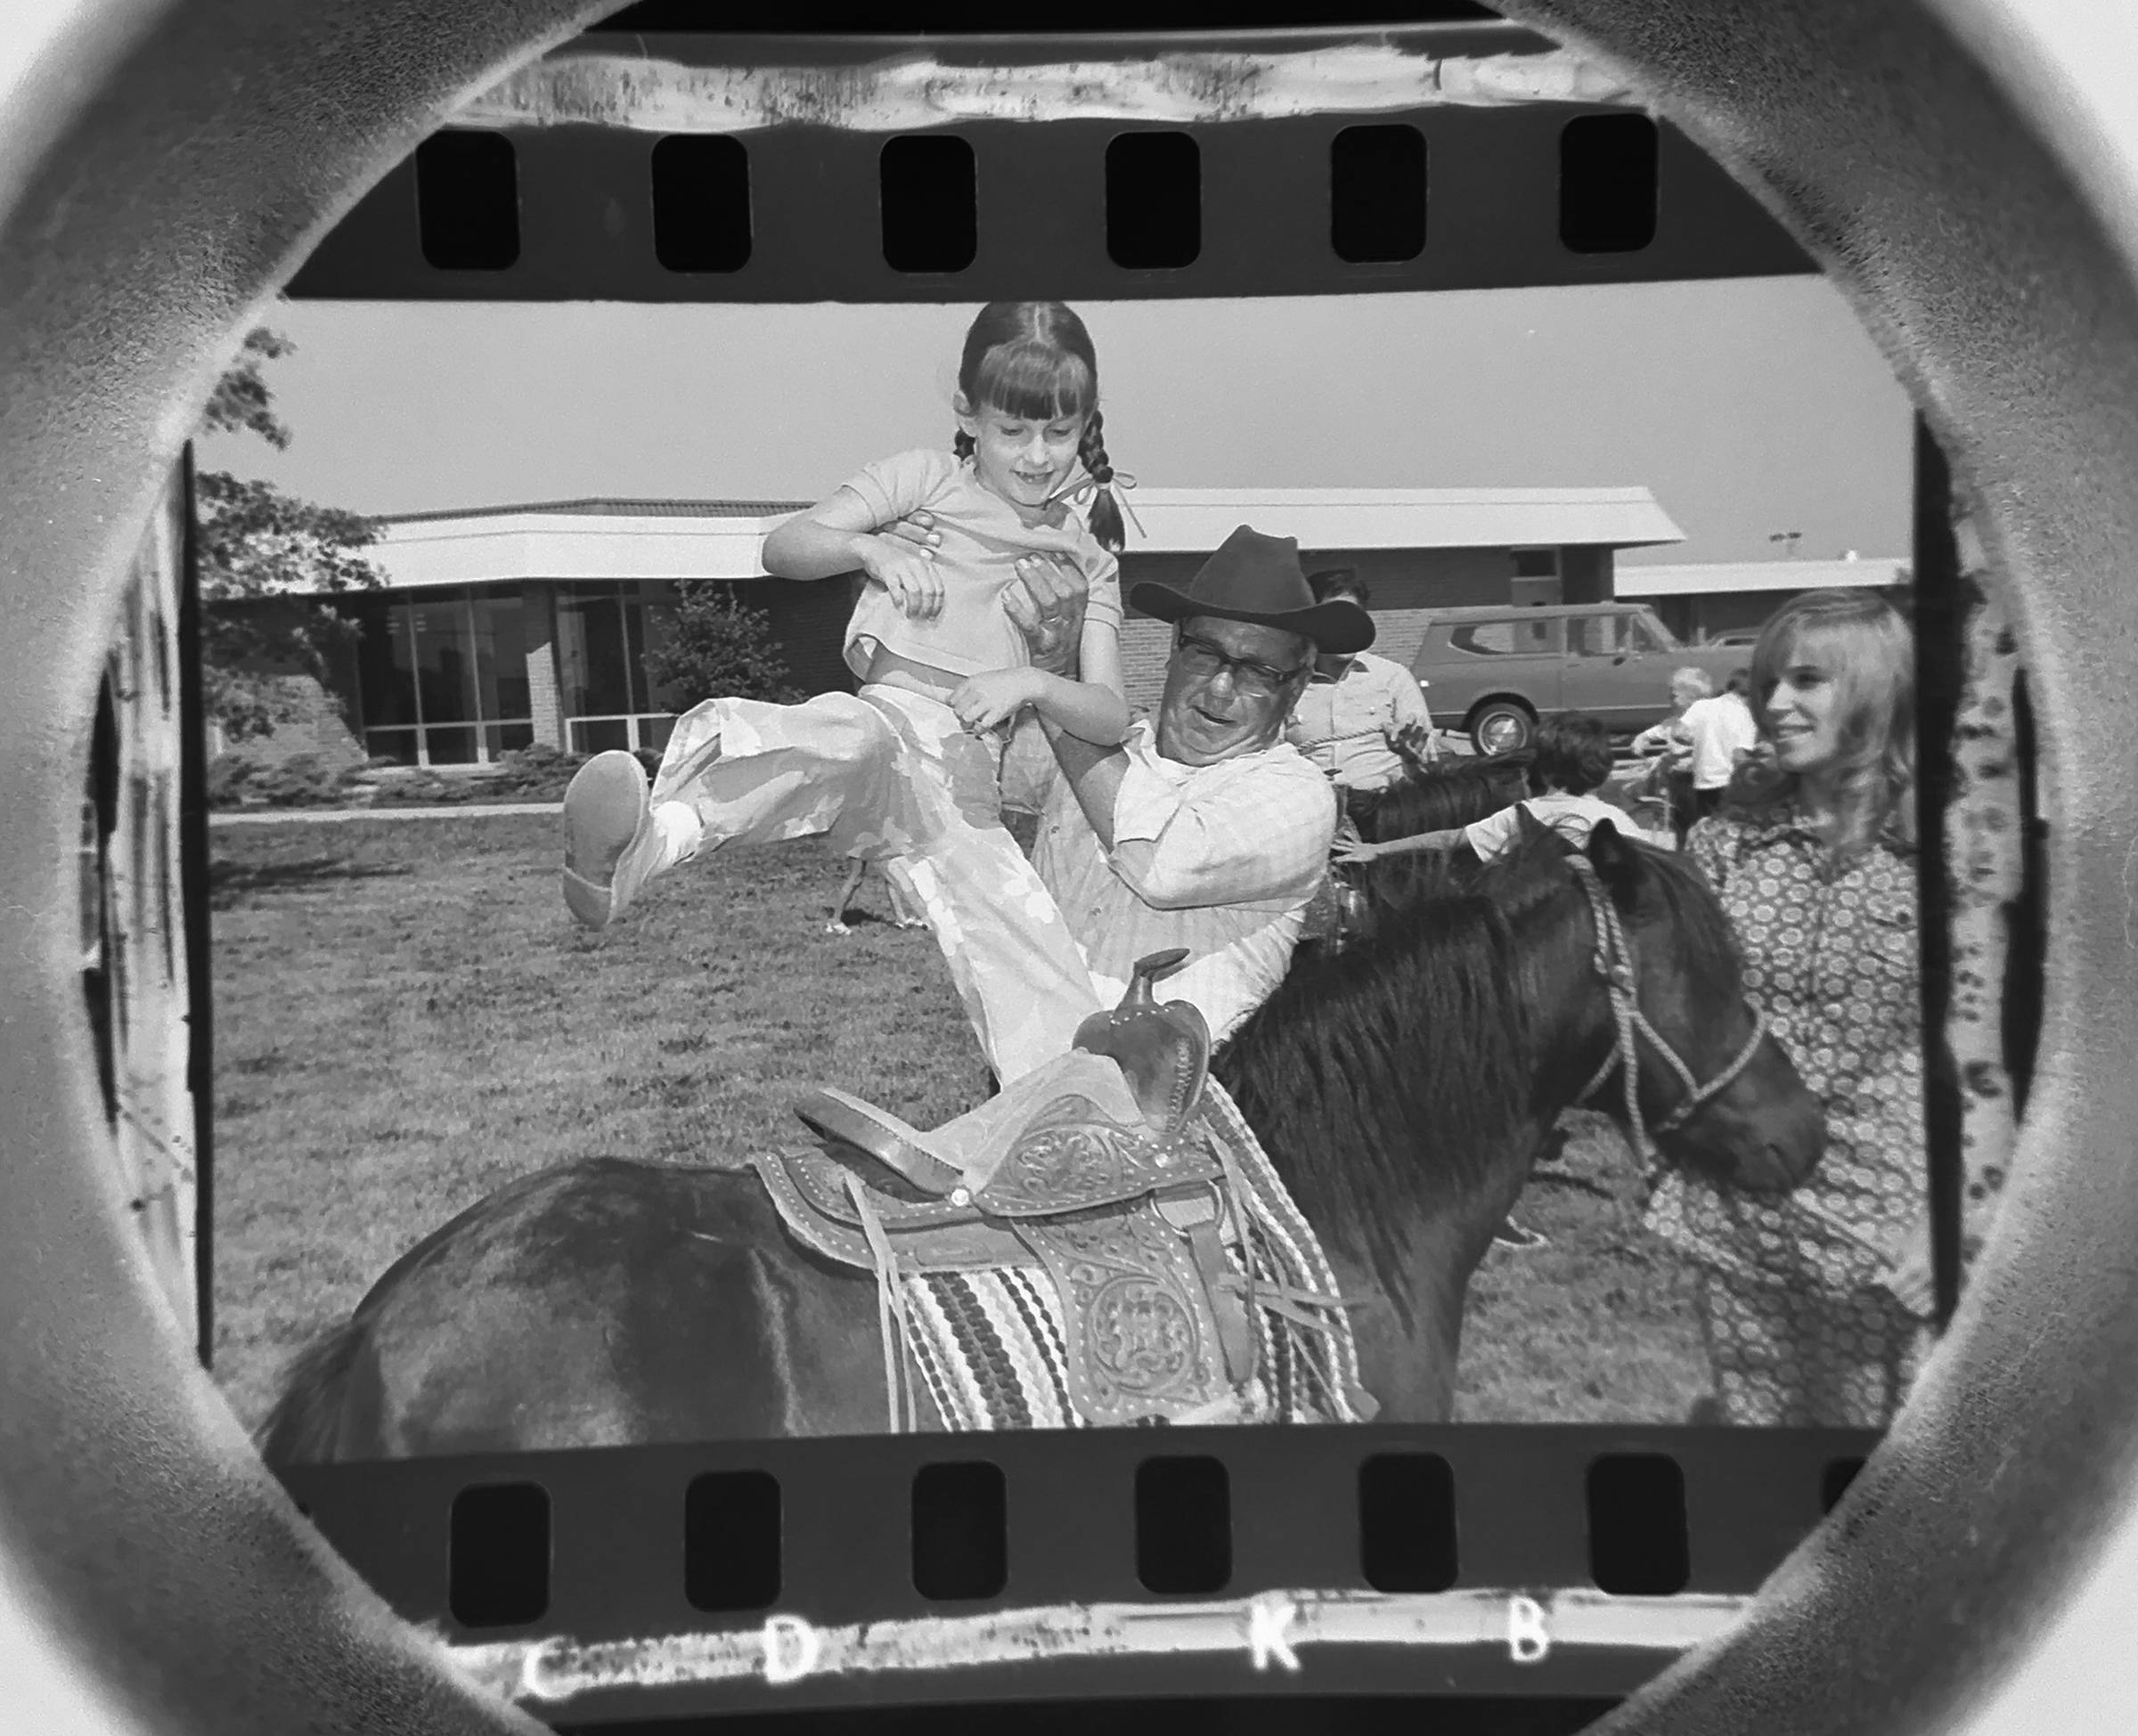 The Daily Herald Archives, Assignment 22,447, Don Vickery photo: Pony rides were a feature of the last week of summer school at Juliette Low school in Arlington Heights in August of 1971.